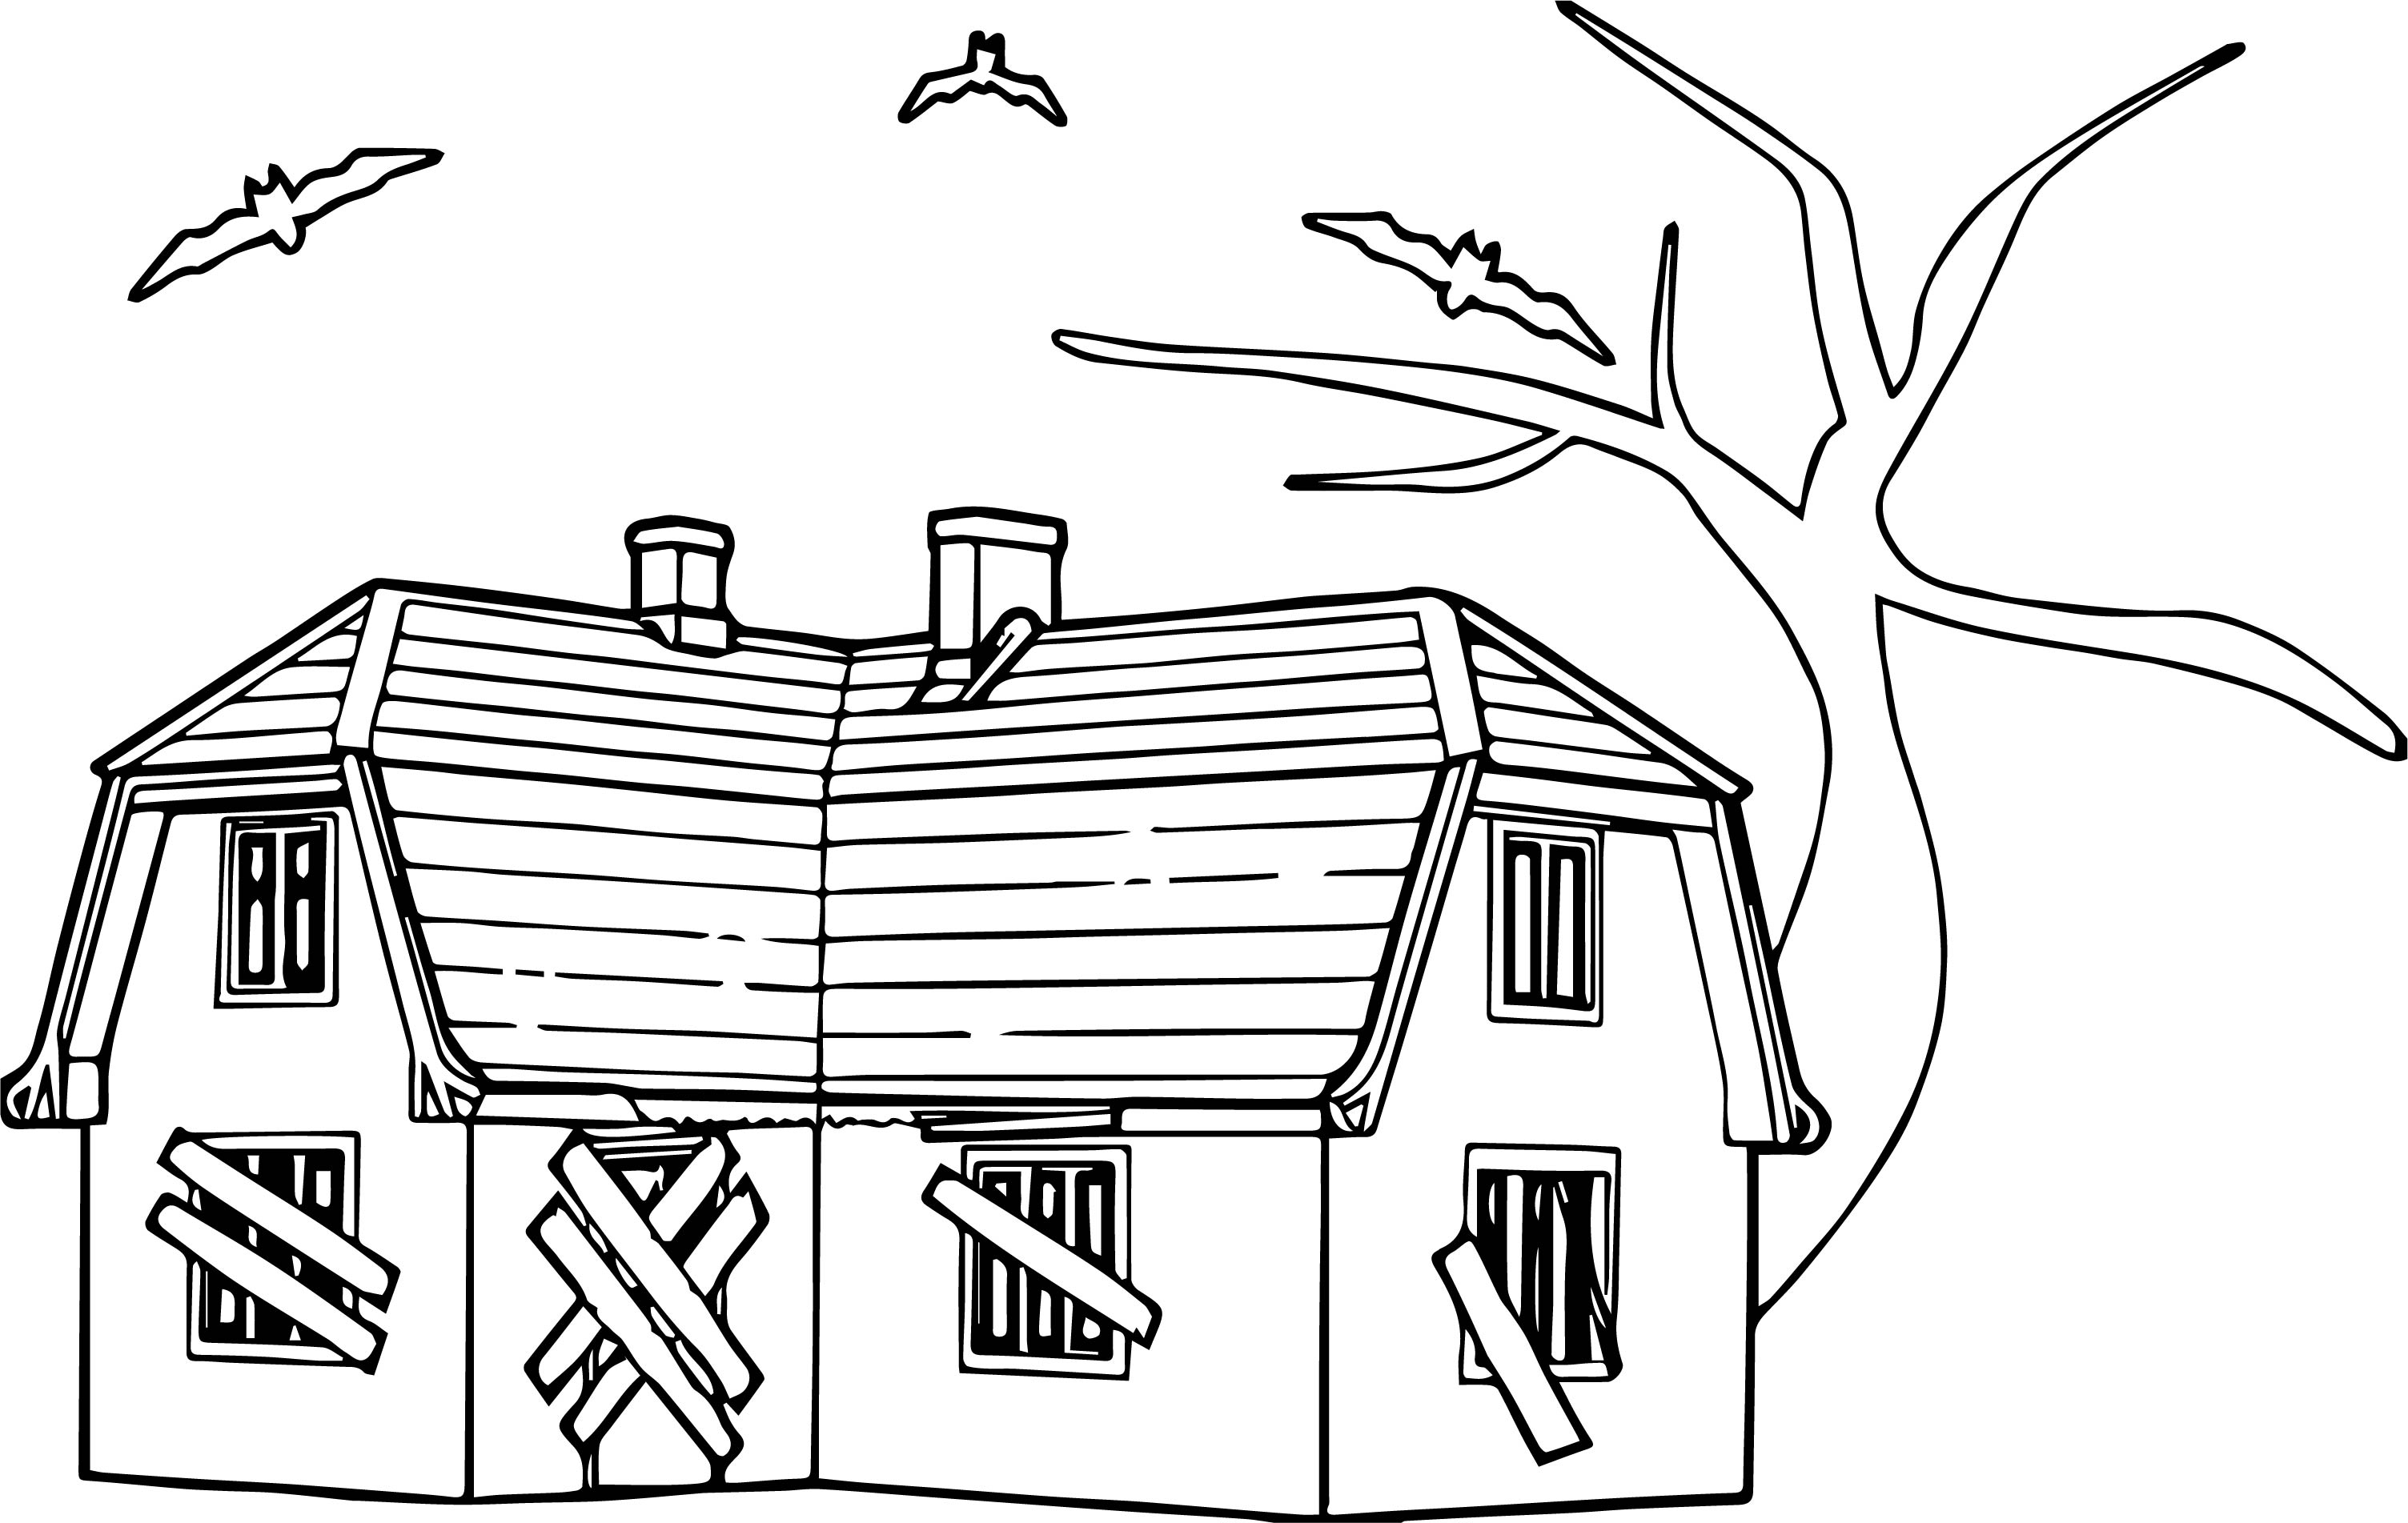 haunted house Coloring Page (2)